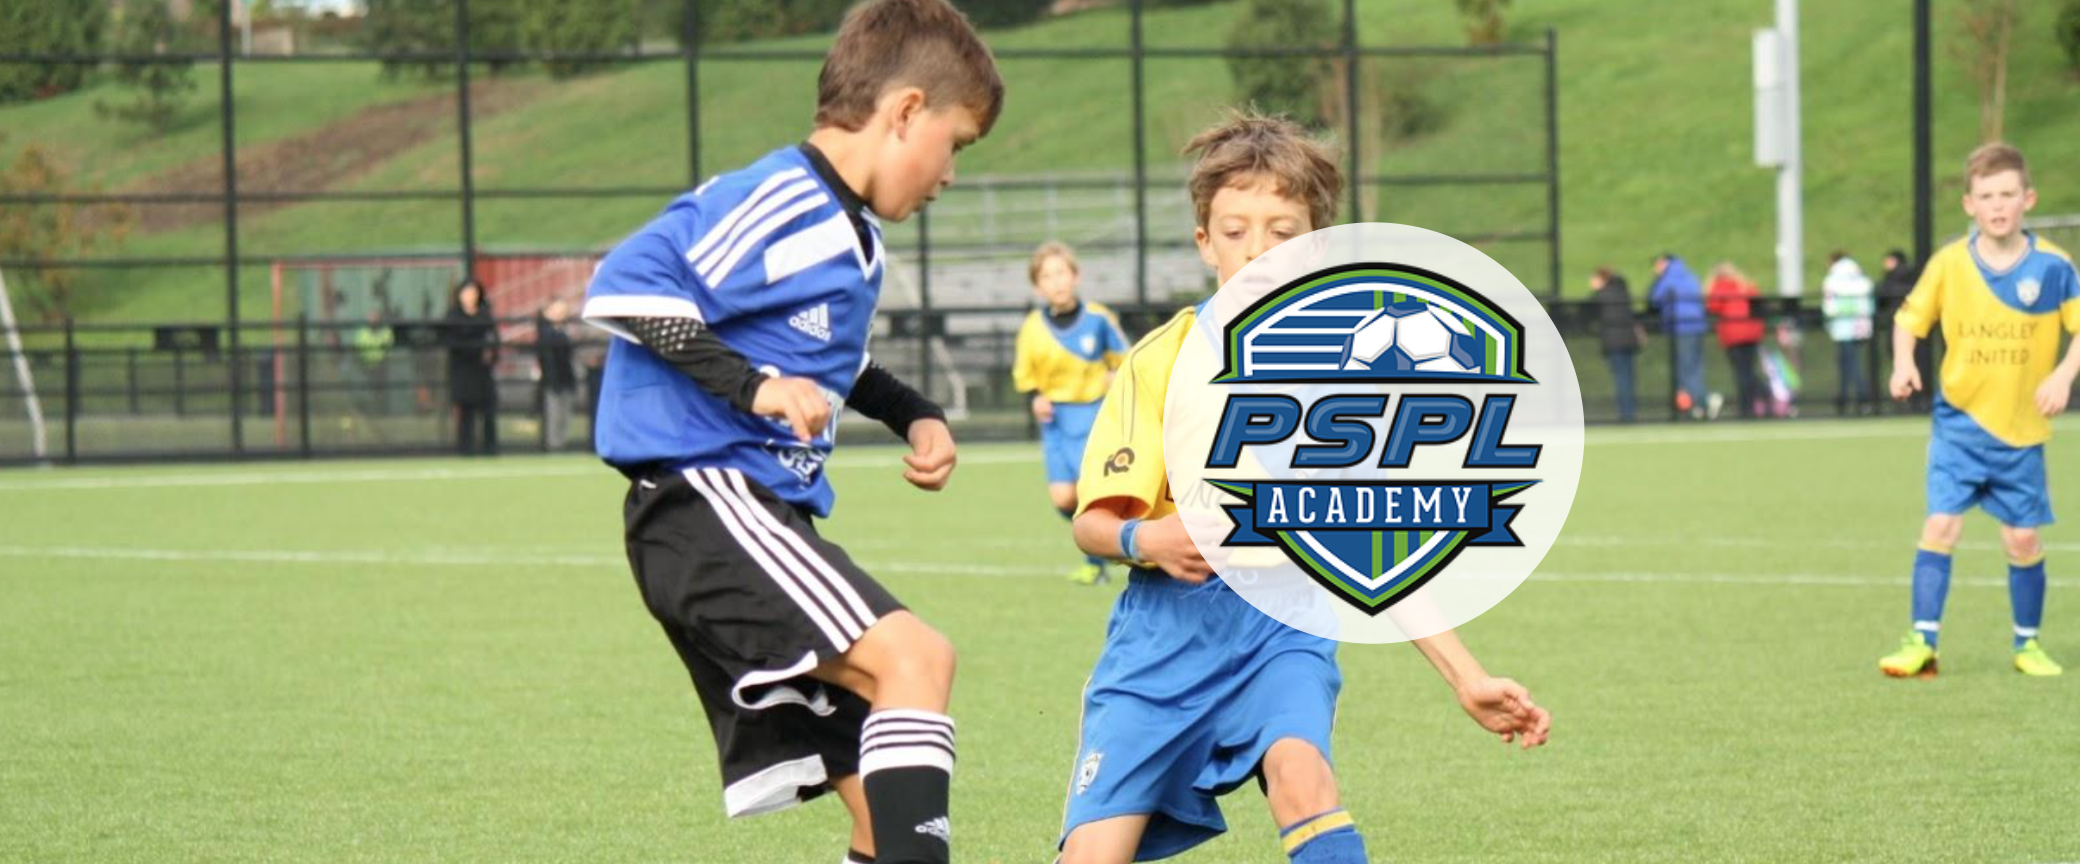 PSPL Academy Teams to Play at SX Cup